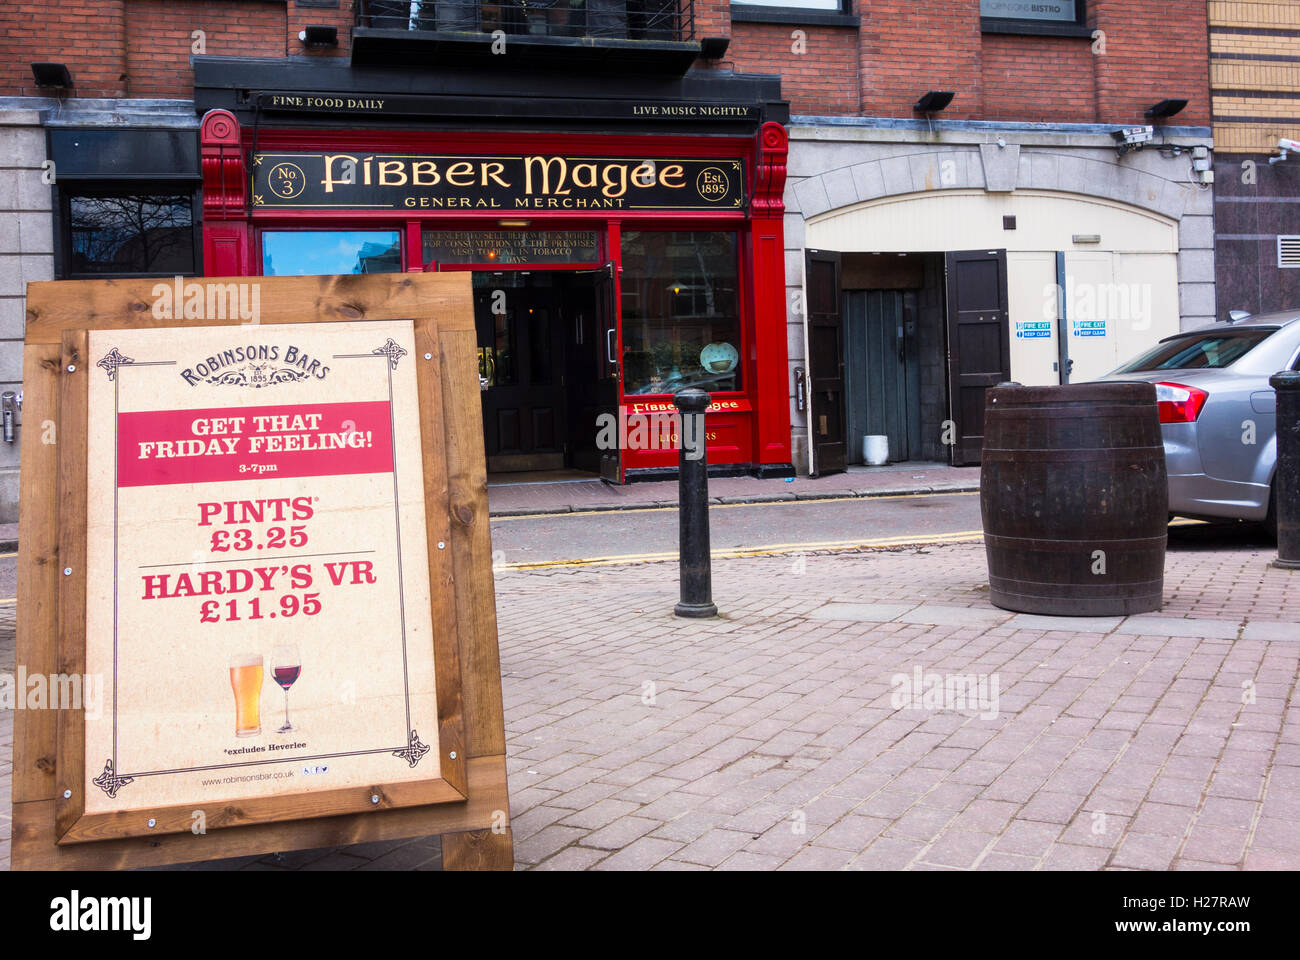 Fibber Magee's bar and restaurant, Blackstaff Square, Belfast, Northern Ireland - Stock Image